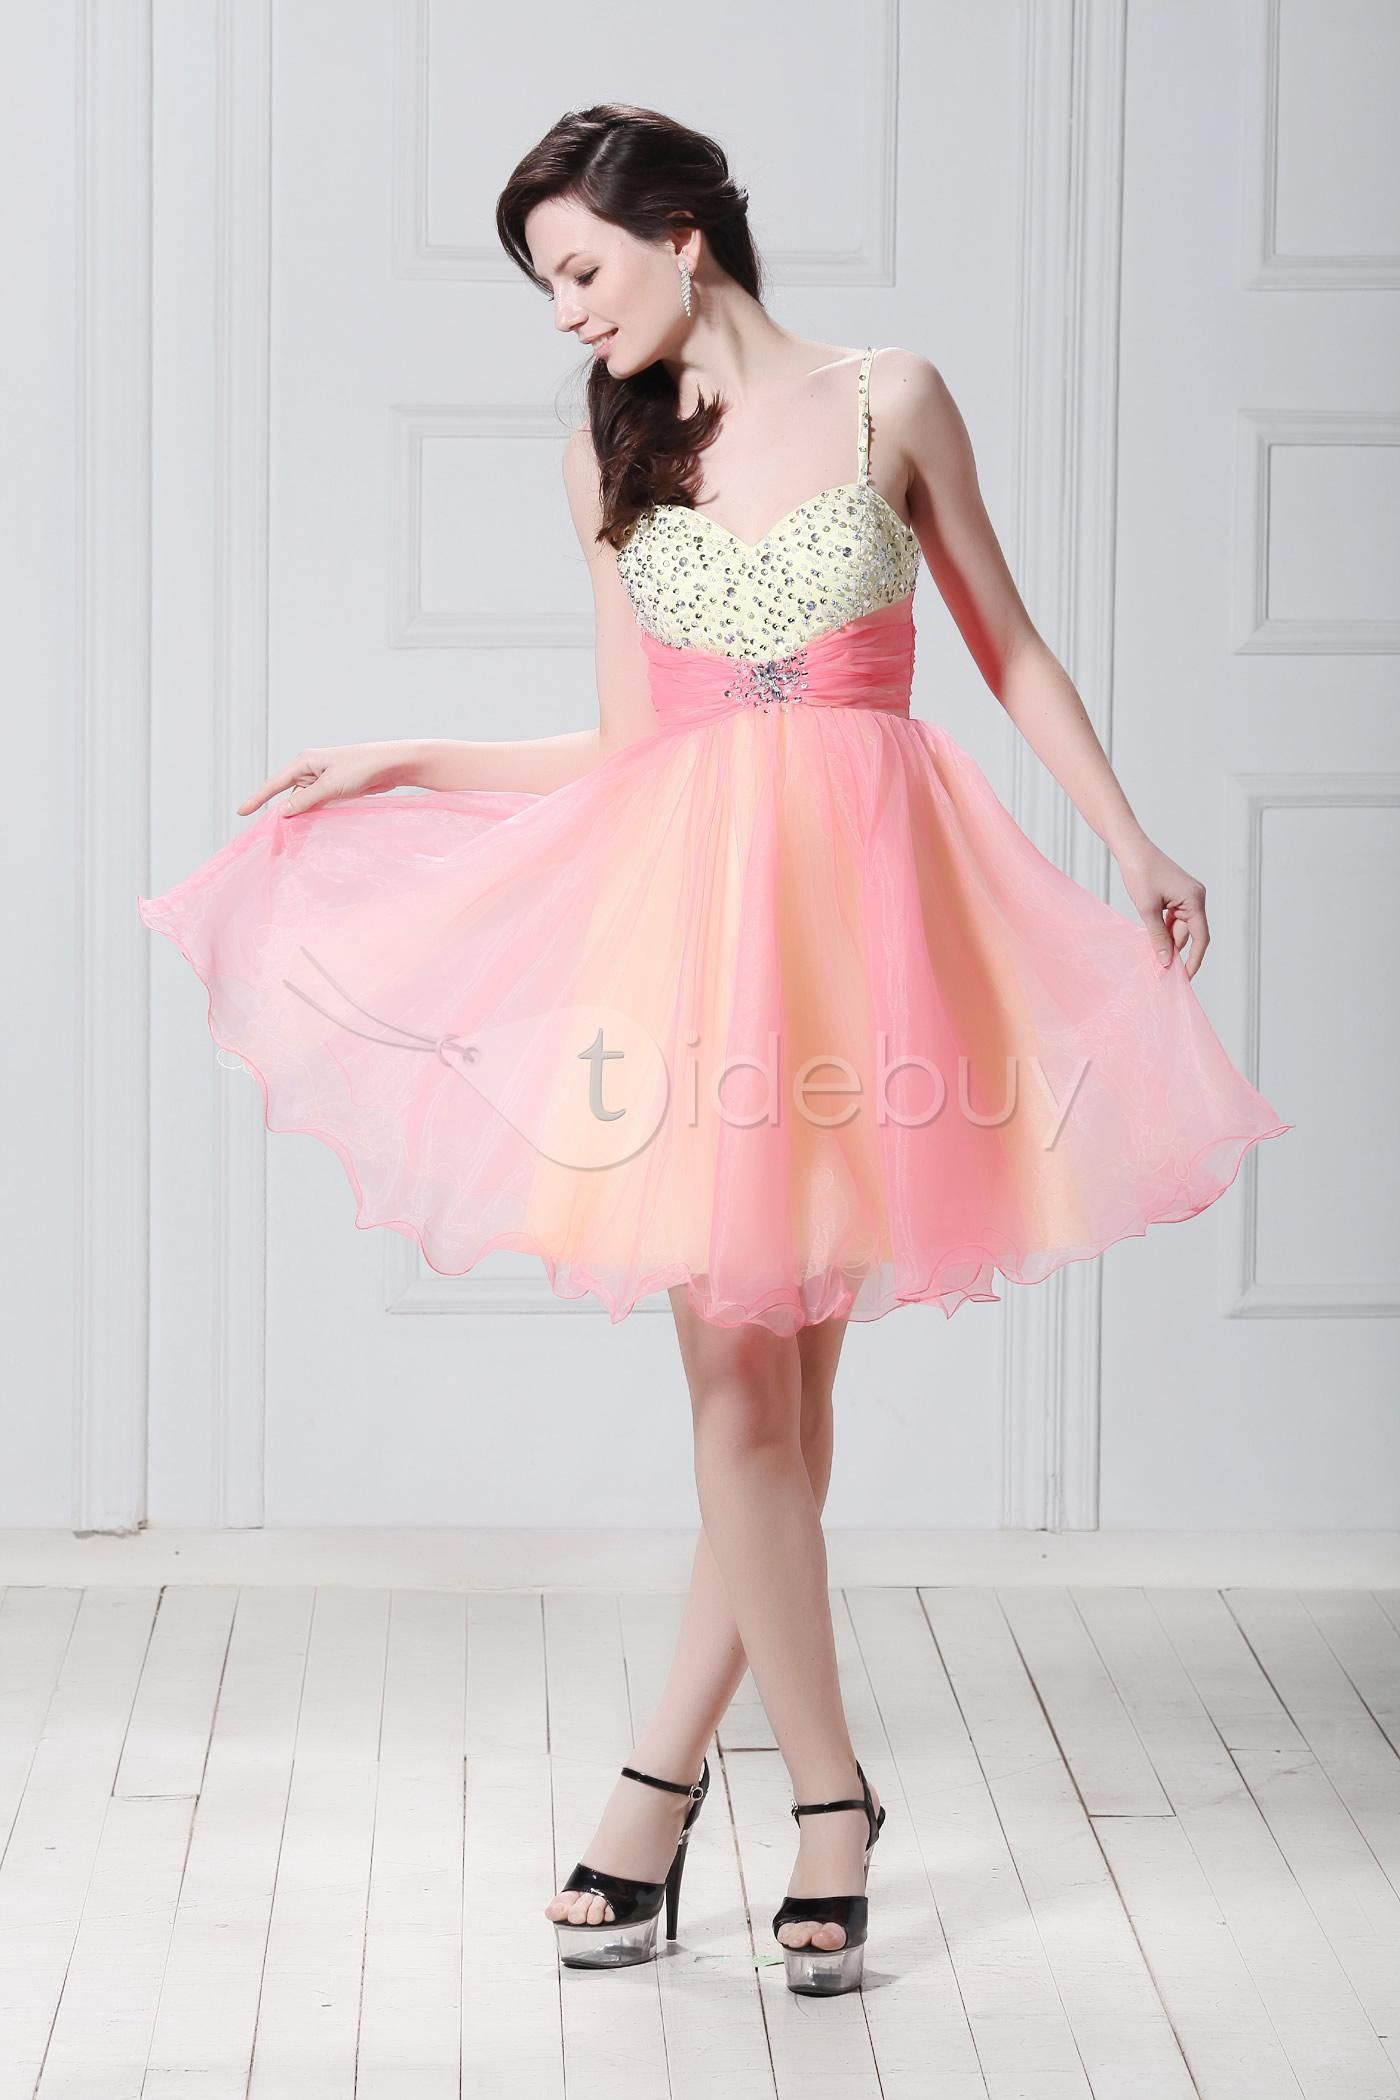 How sweet is this dress? Perfect for a girly birthday